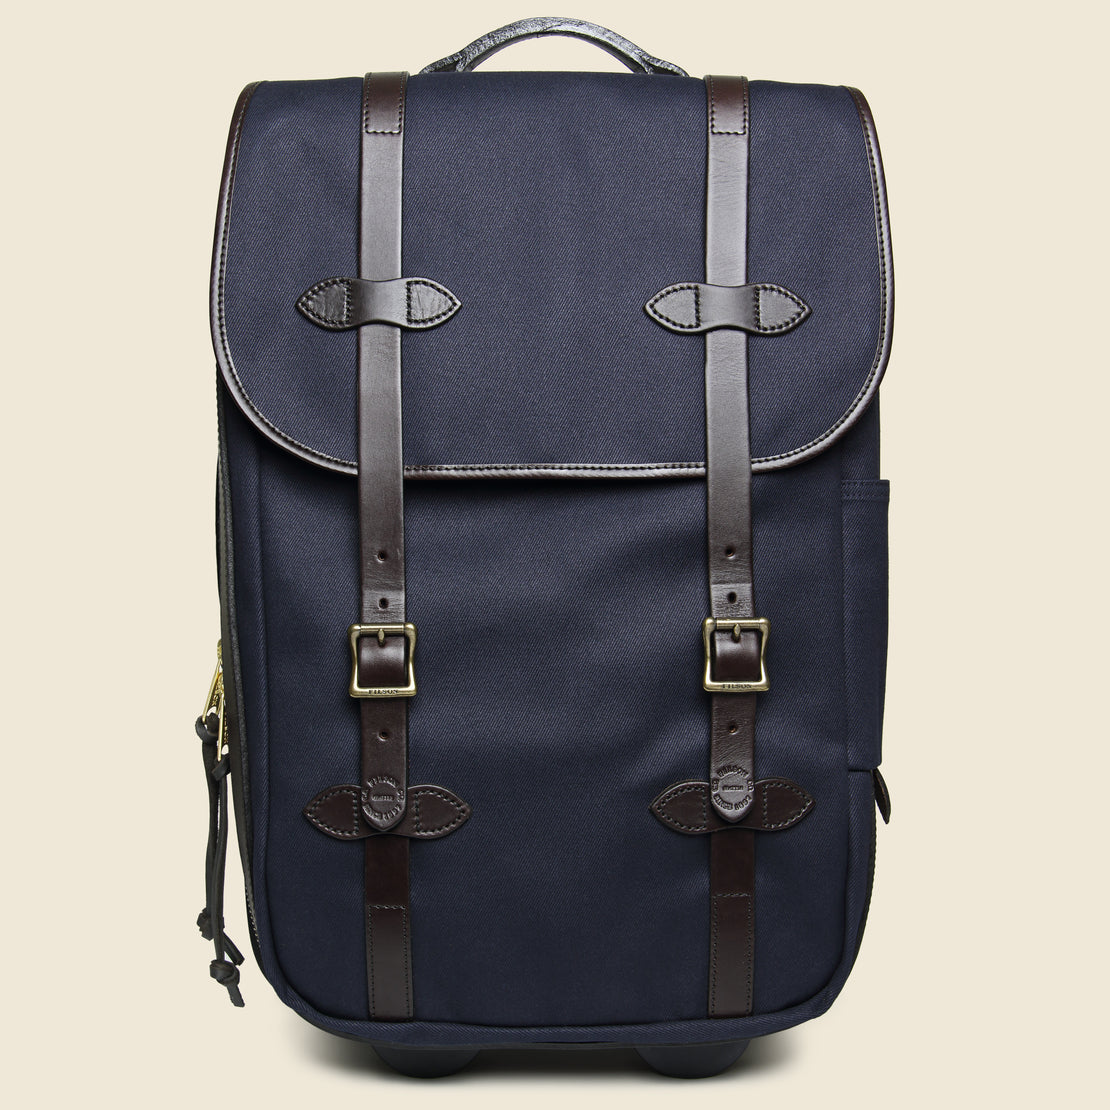 Filson Rolling Carry-On Bag - Navy